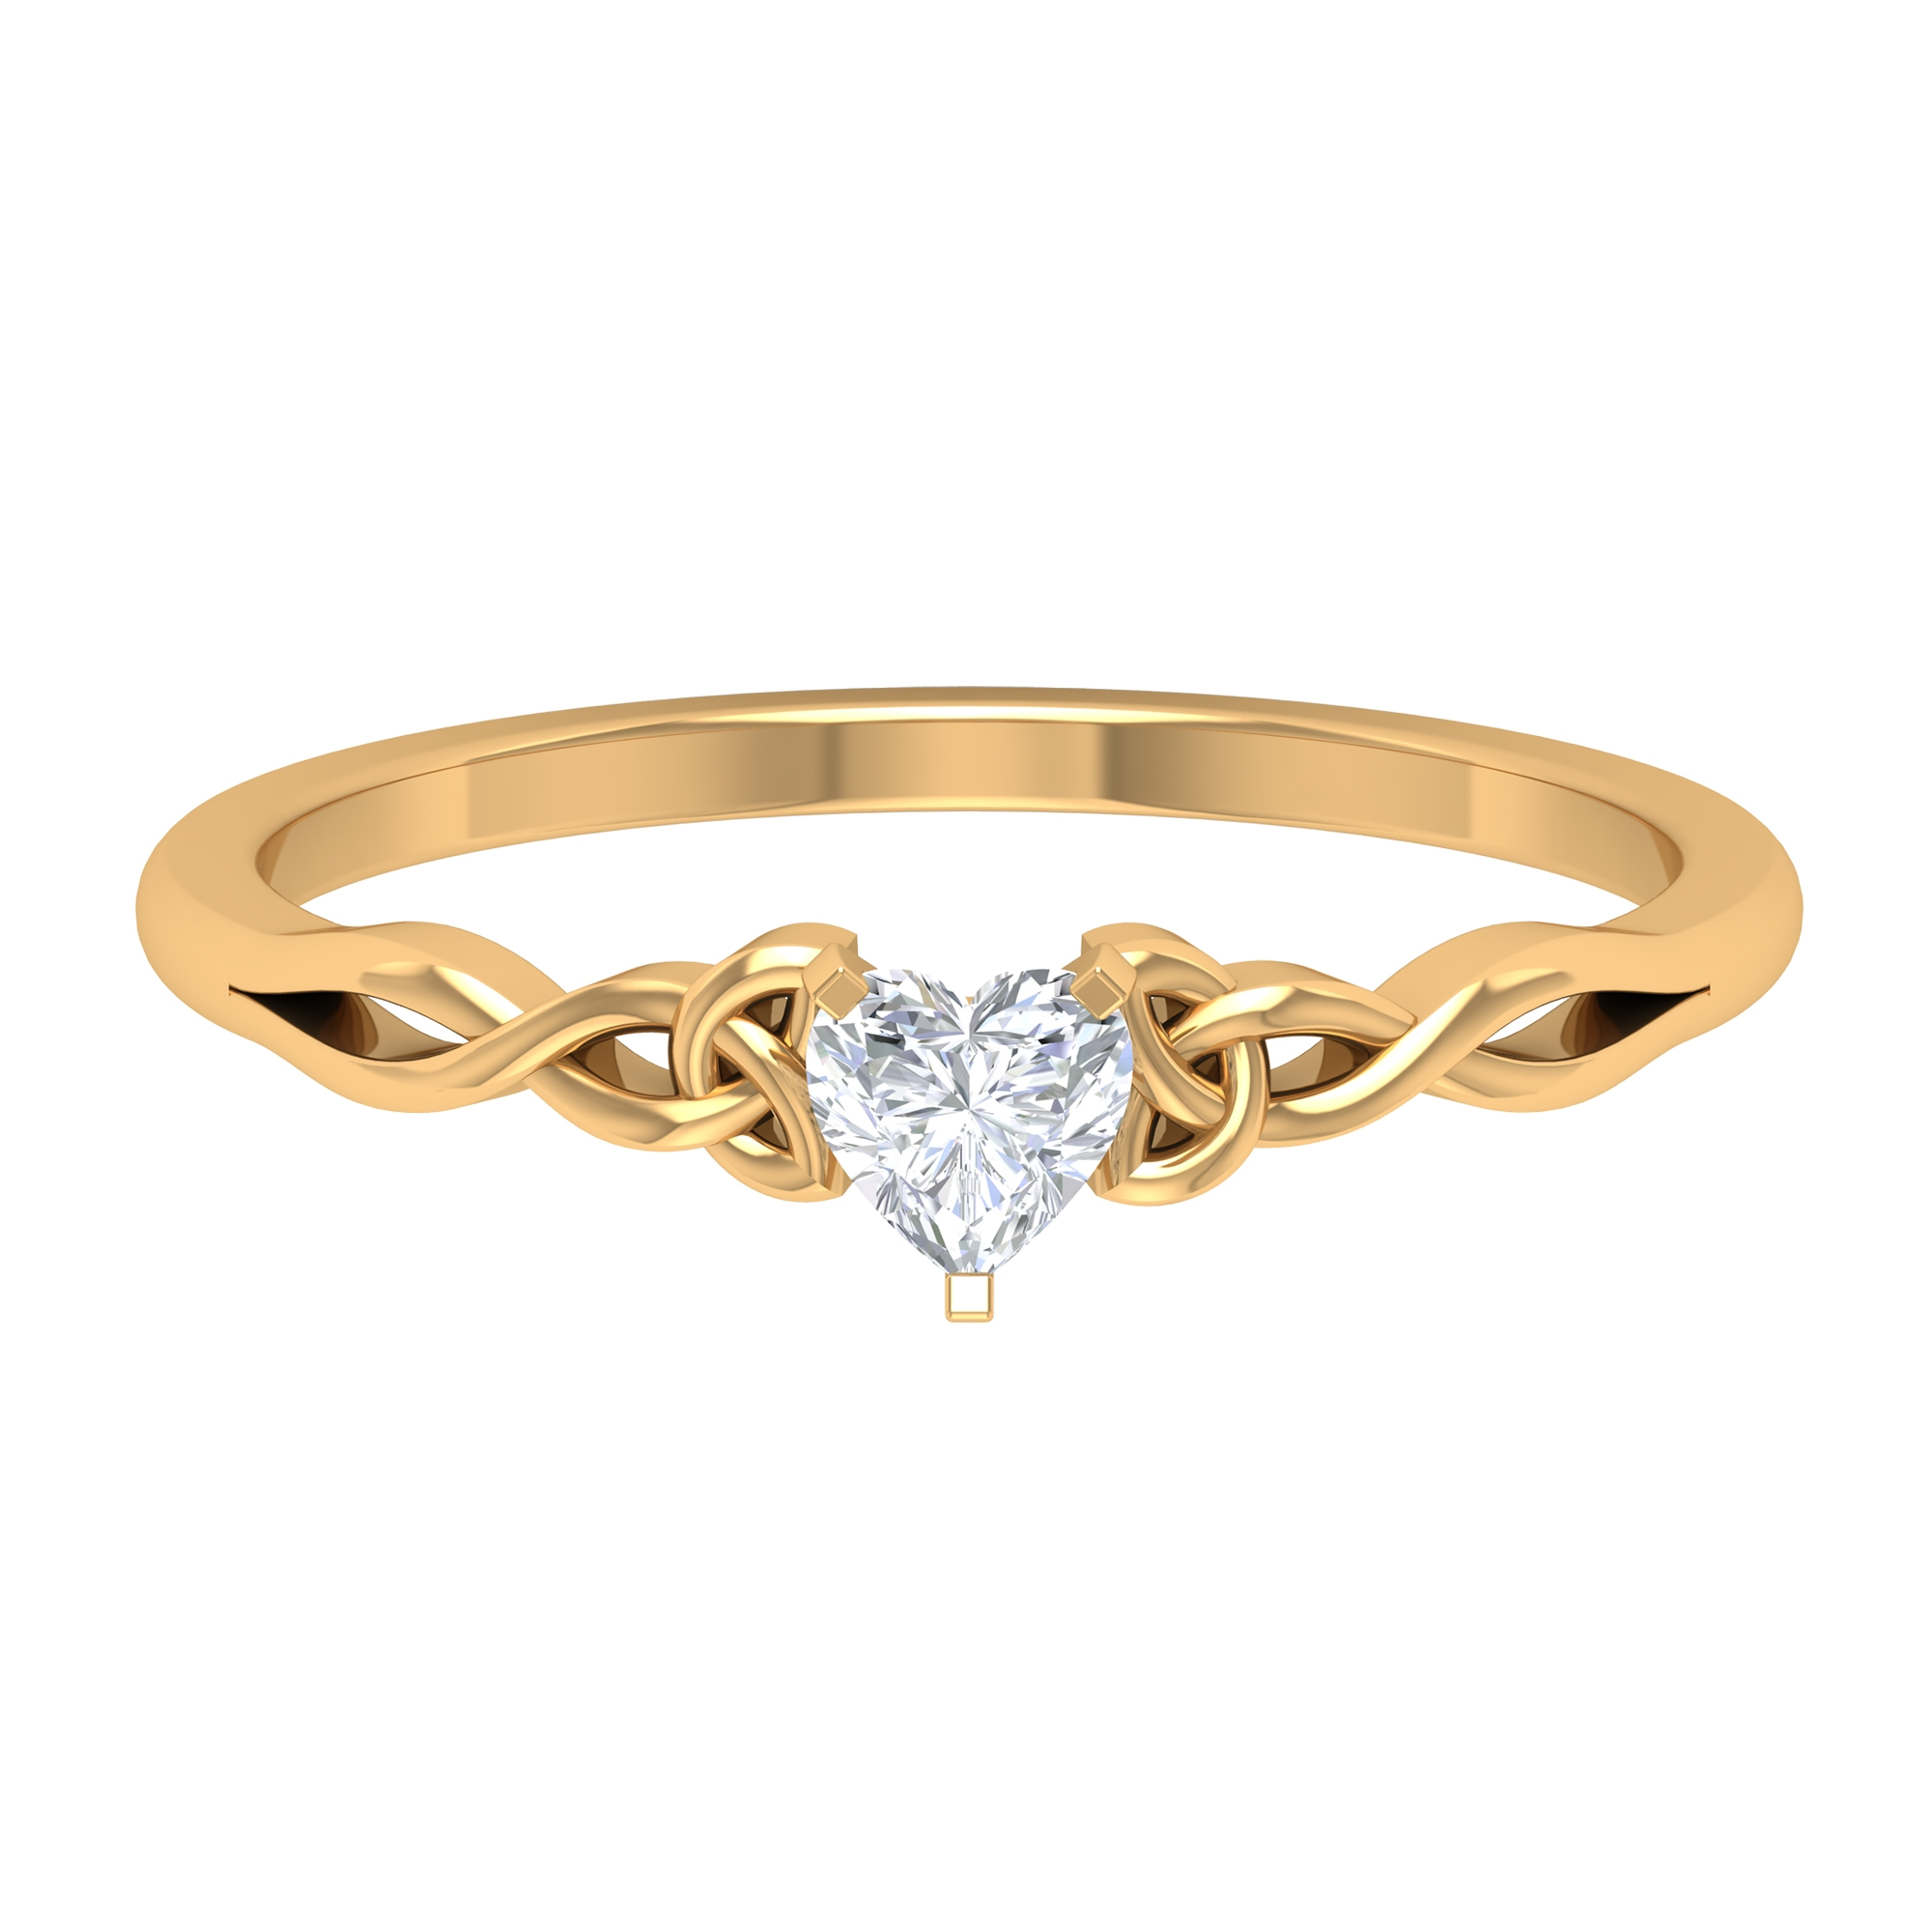 4 MM Heart Shape Diamond Solitaire Ring in 3 Prong Peg Head Setting with Celtic Band